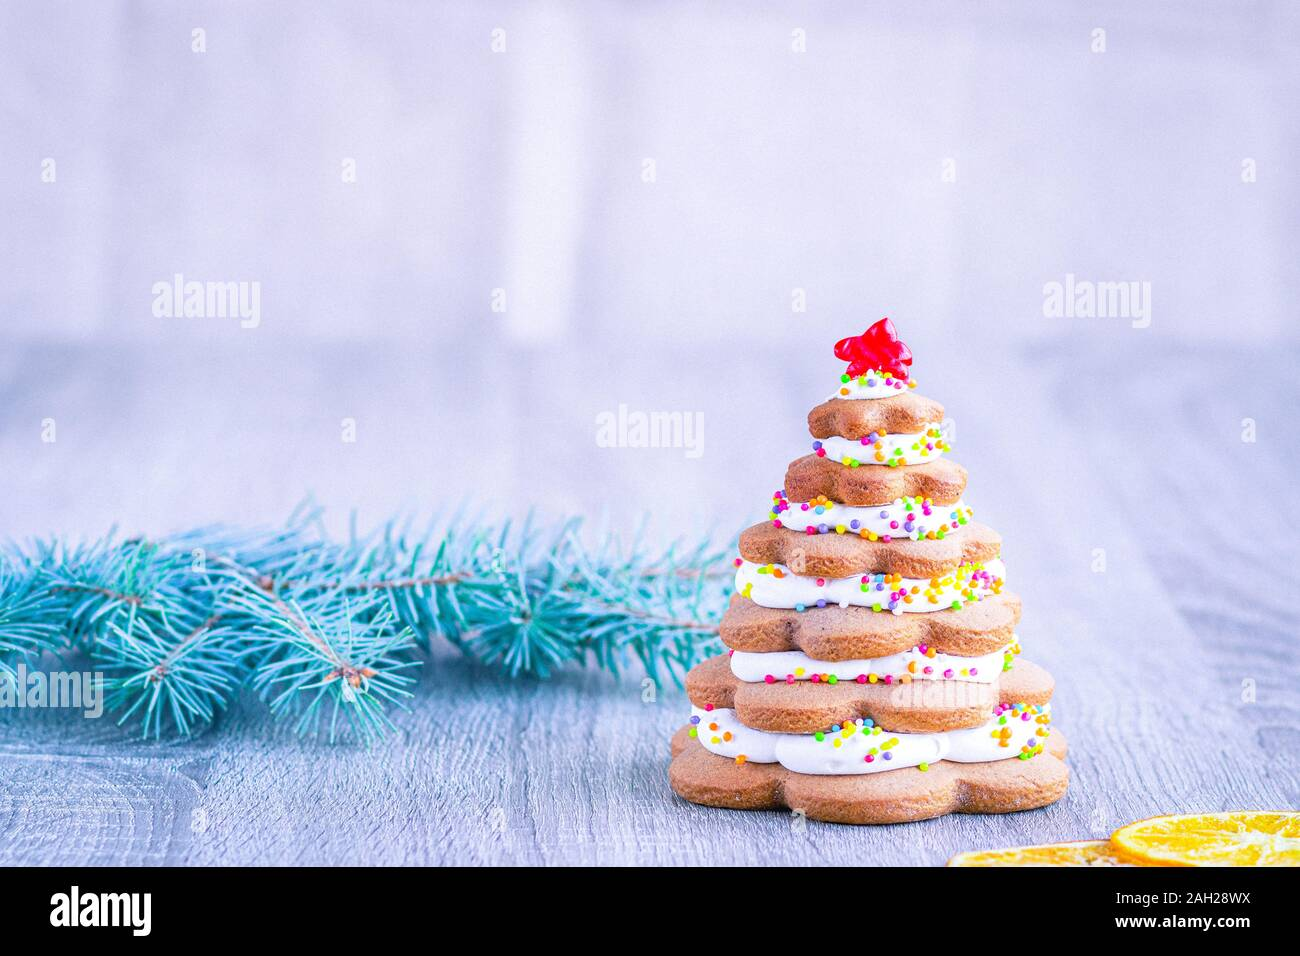 Alternative Christmas Tree Made From Ginger Cookies And Colored Sprinkles Next To Christmas Tree Branches On A Light Background Stock Photo Alamy